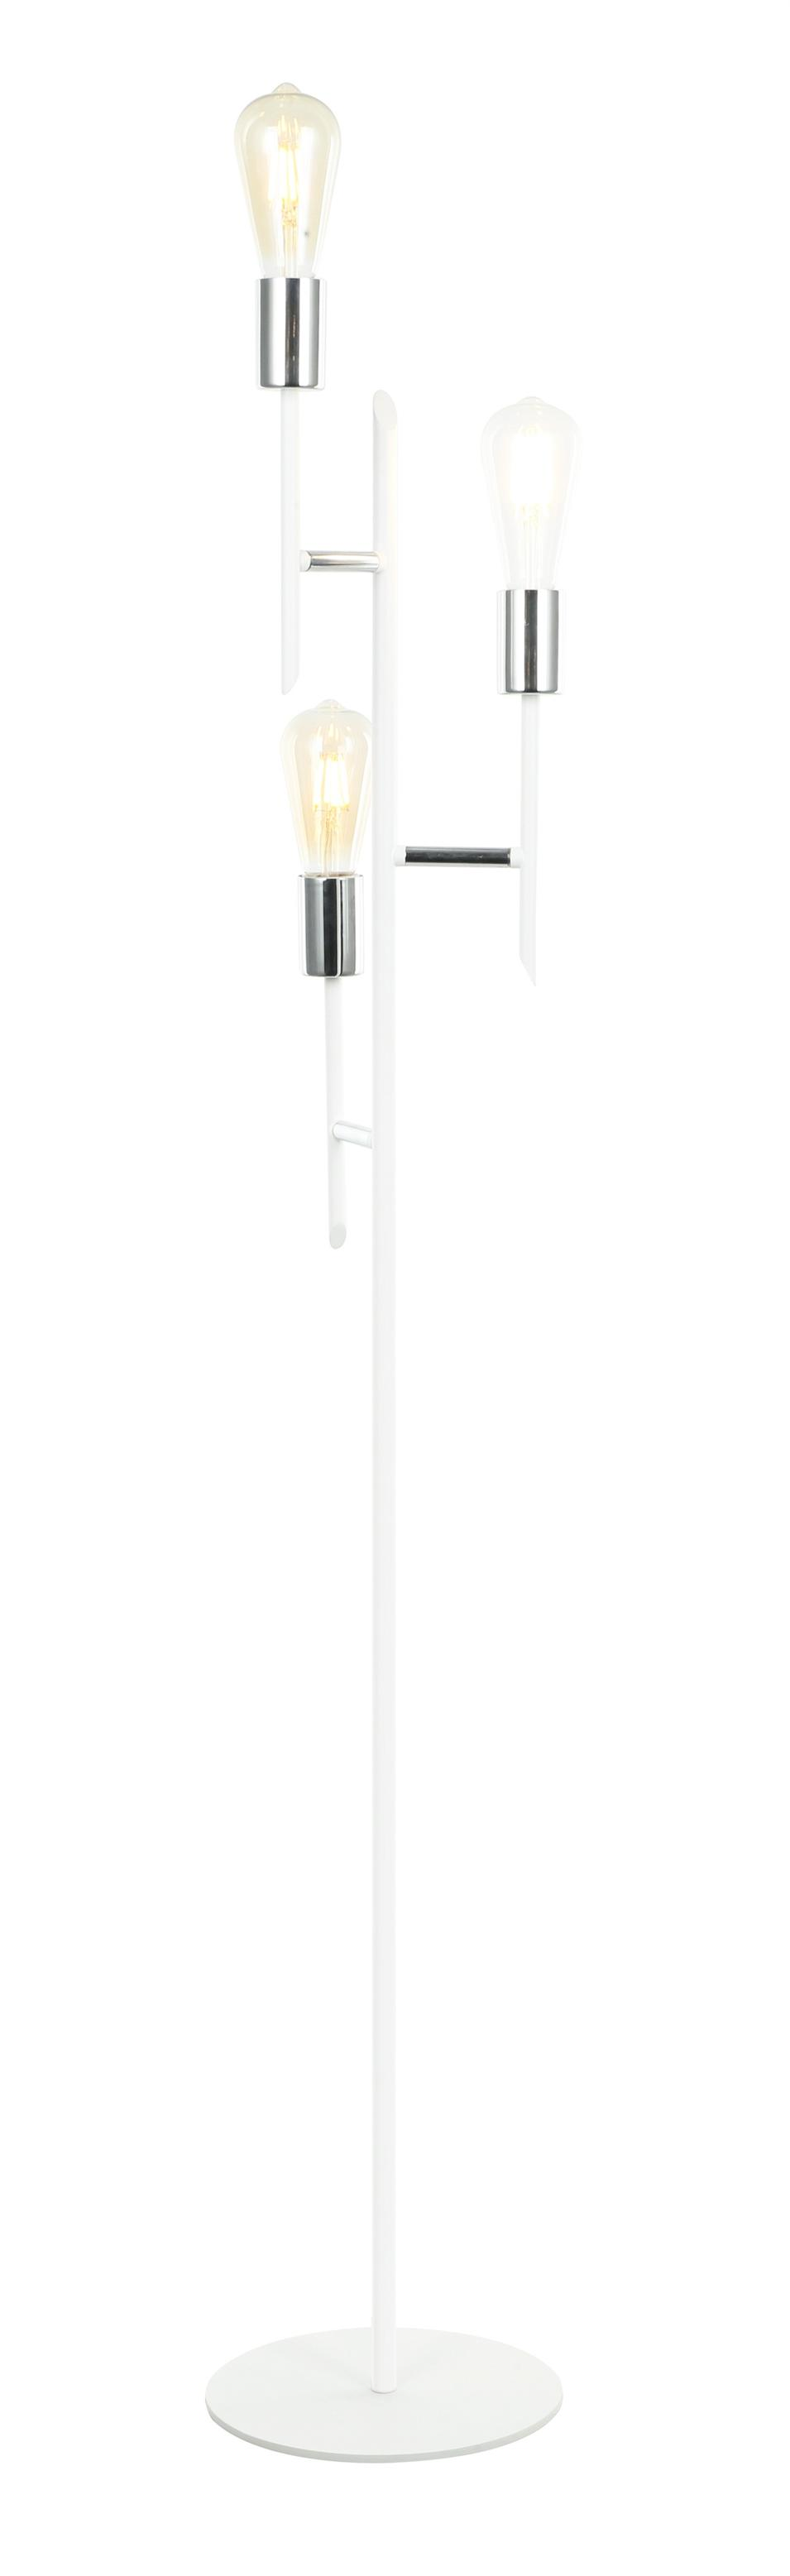 4W LED FLOOR LAMP 63735-3A